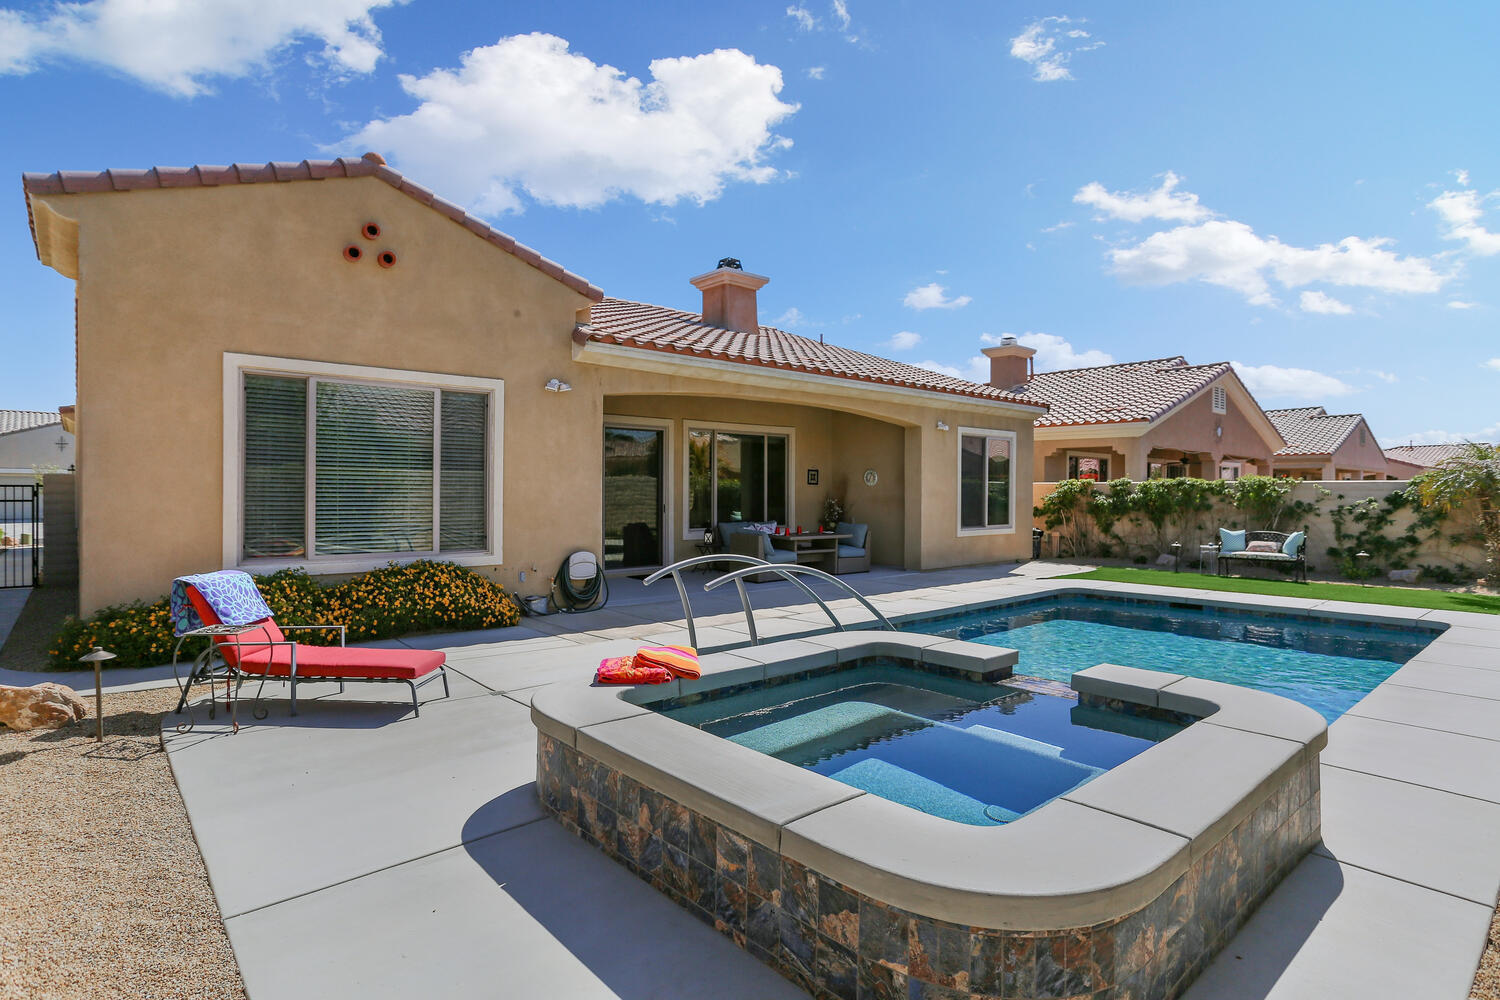 Quintessential West-facing Castellano (2230 sq.ft) on private lot with filtered mountain views. Enter through iron gated courtyard to an intricate patterned glass front entry door, opens to reveal a wide open Great room floor-plan. Brand-new Designer finished salt-water walk-swim pool & spa 4.5 ft deep, by 25 ft long, by Tesera pools with with warranty. Tinted windows in Living, Patio & Guest Bedroom for cooler interior. LED lighting in kitchen & outside patio. Oversized 2 car garage + golf cart garage w/ custom cabinets & shelving. Fully self enclosed den or media room with beautiful glass french doors. Inviting front office w/ built-in bookshelves opens to expansive front window overlooking courtyard. Small wood rounds on entire baseboards & Crown Molding around kitchen, living room & entry areas. Ceiling fans installed in every room. Deluxe built-in cabinetry by fireplace. All closets & pantry storage spaces contain extra shelving, including a re-built master closet. But wait, there's more: All new kitchen  with 2-tone cabinets & quartz counter-tops, new garbage disposal, dishwasher, and microwave. Also all new bathroom cabinets, with LED lighting & wall paper covering. Newer Evaporative cooler in garage. And negotiable (newer) washer & dryer. Move-in ready, meticulously maintained, and upgraded by original owner.